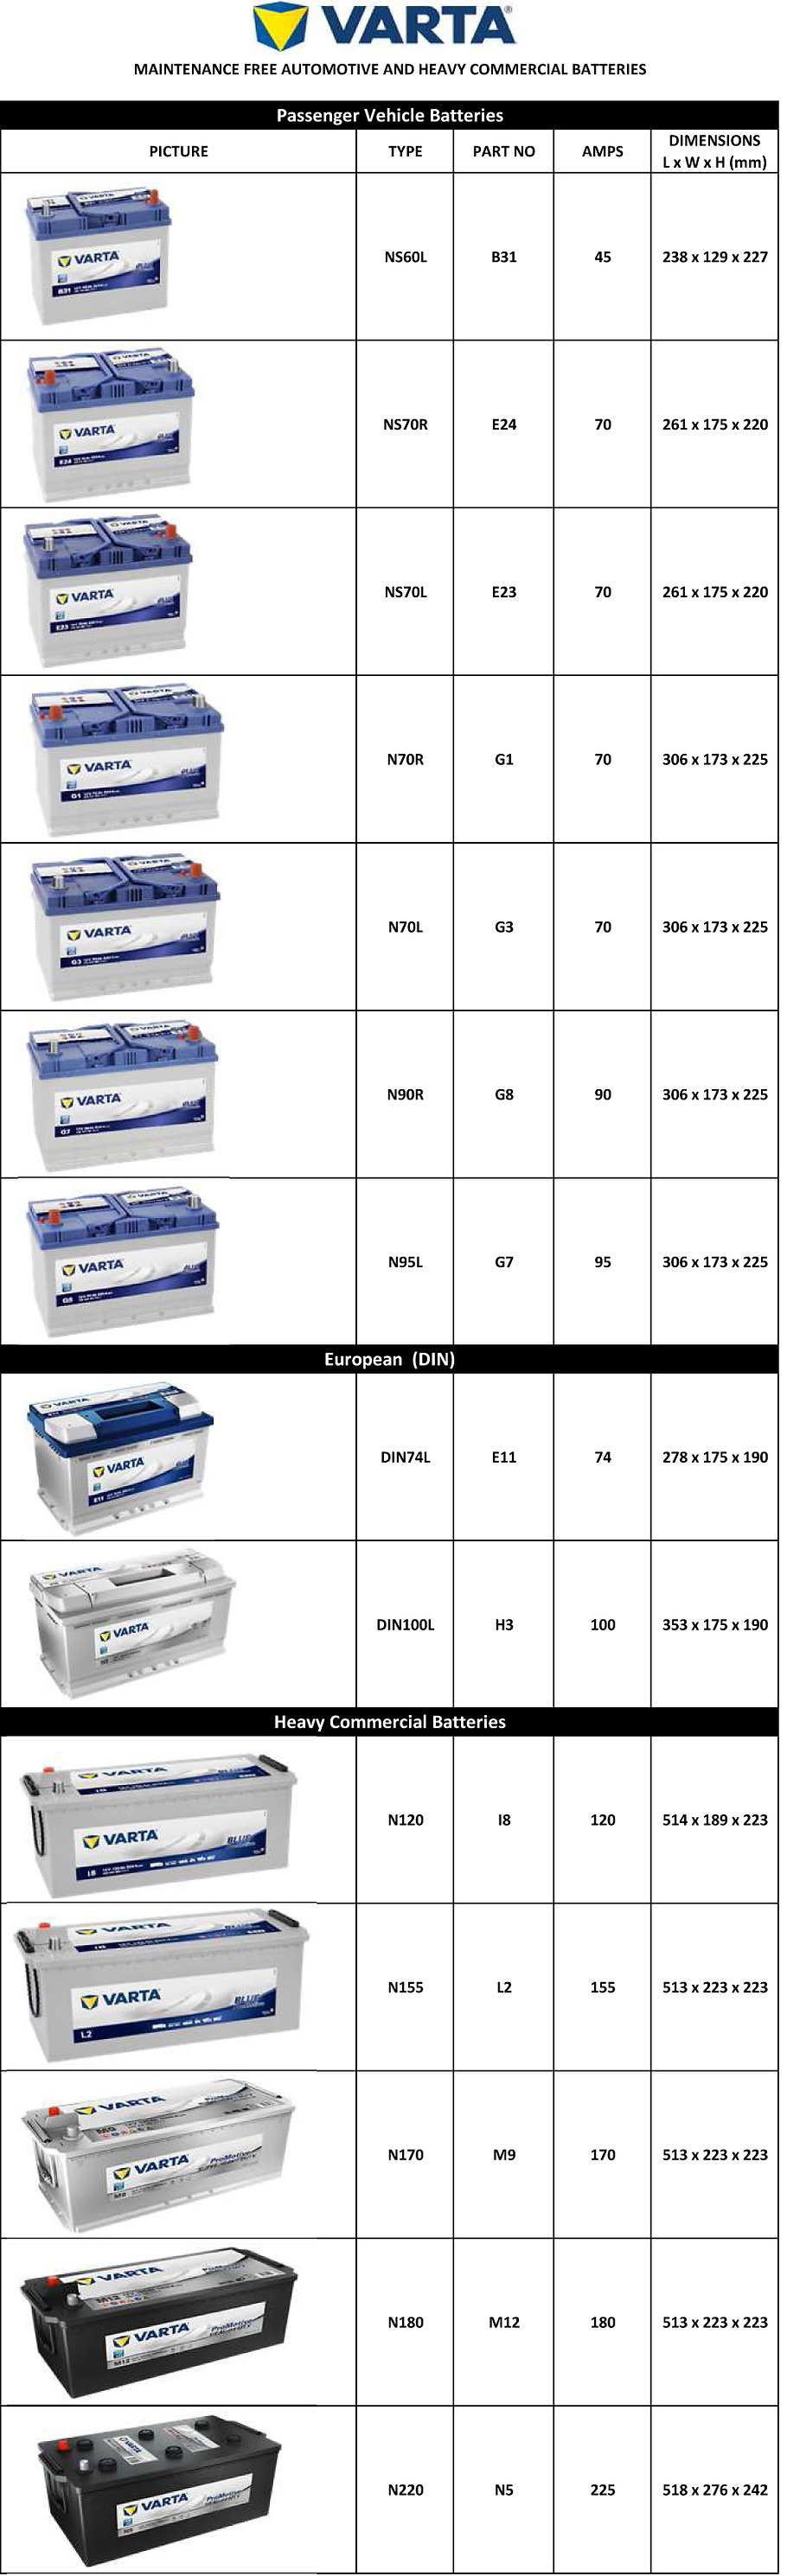 VARTA BATTERIES LIST WITH PHOTOS-NOV2020